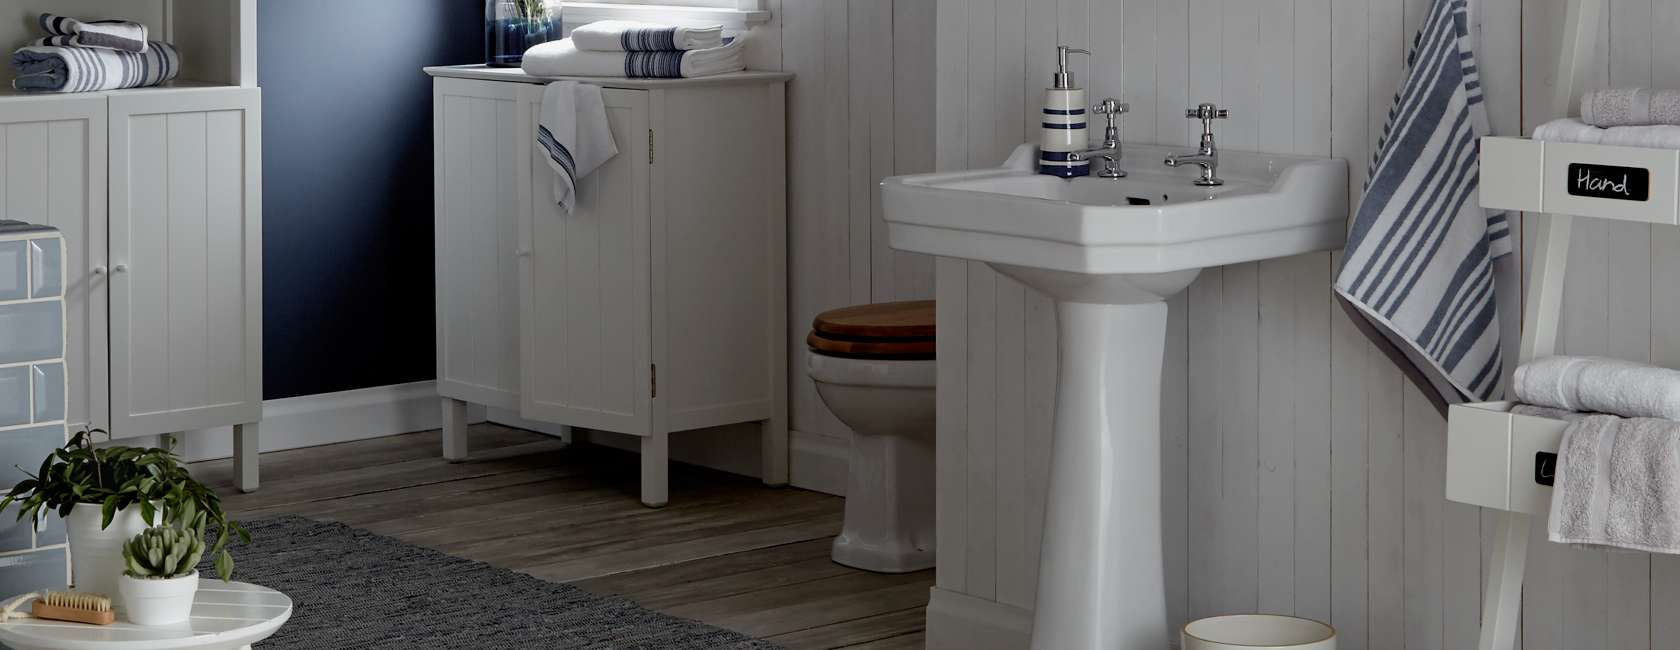 John Lewis & Partners St Ives Bathroom Furniture Range at John